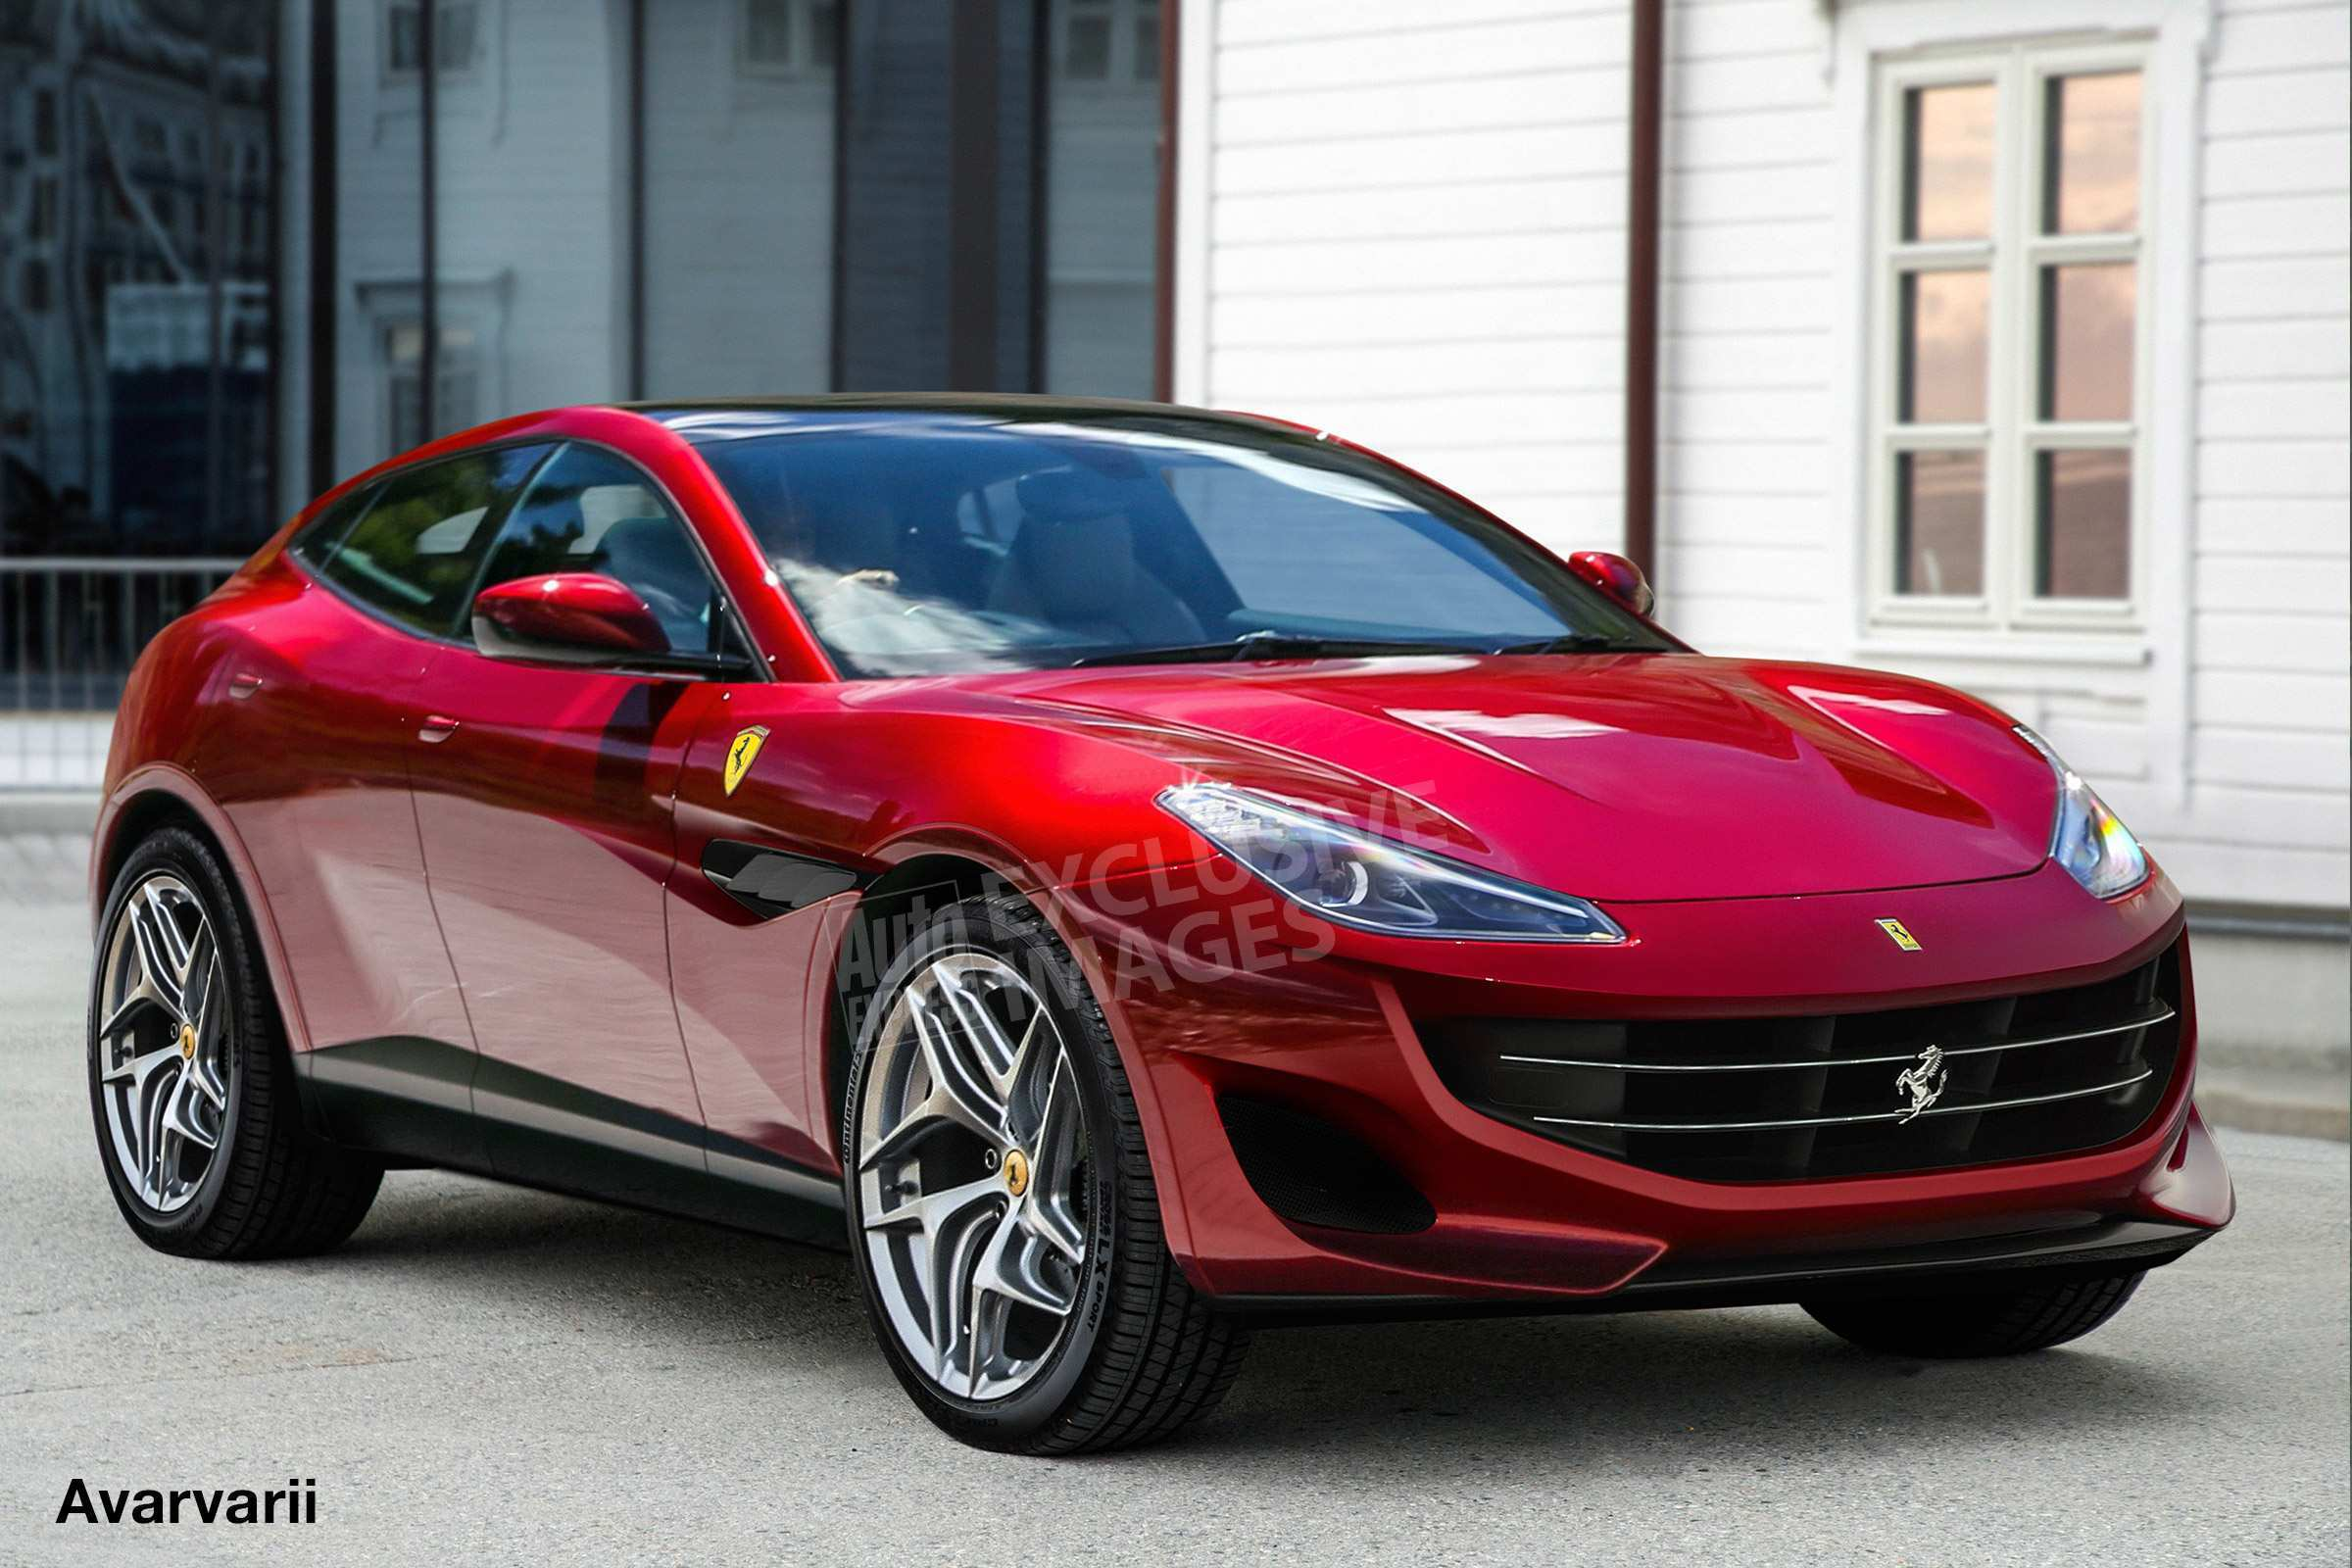 58 Best Review 2020 Ferrari Cars Interior by 2020 Ferrari Cars